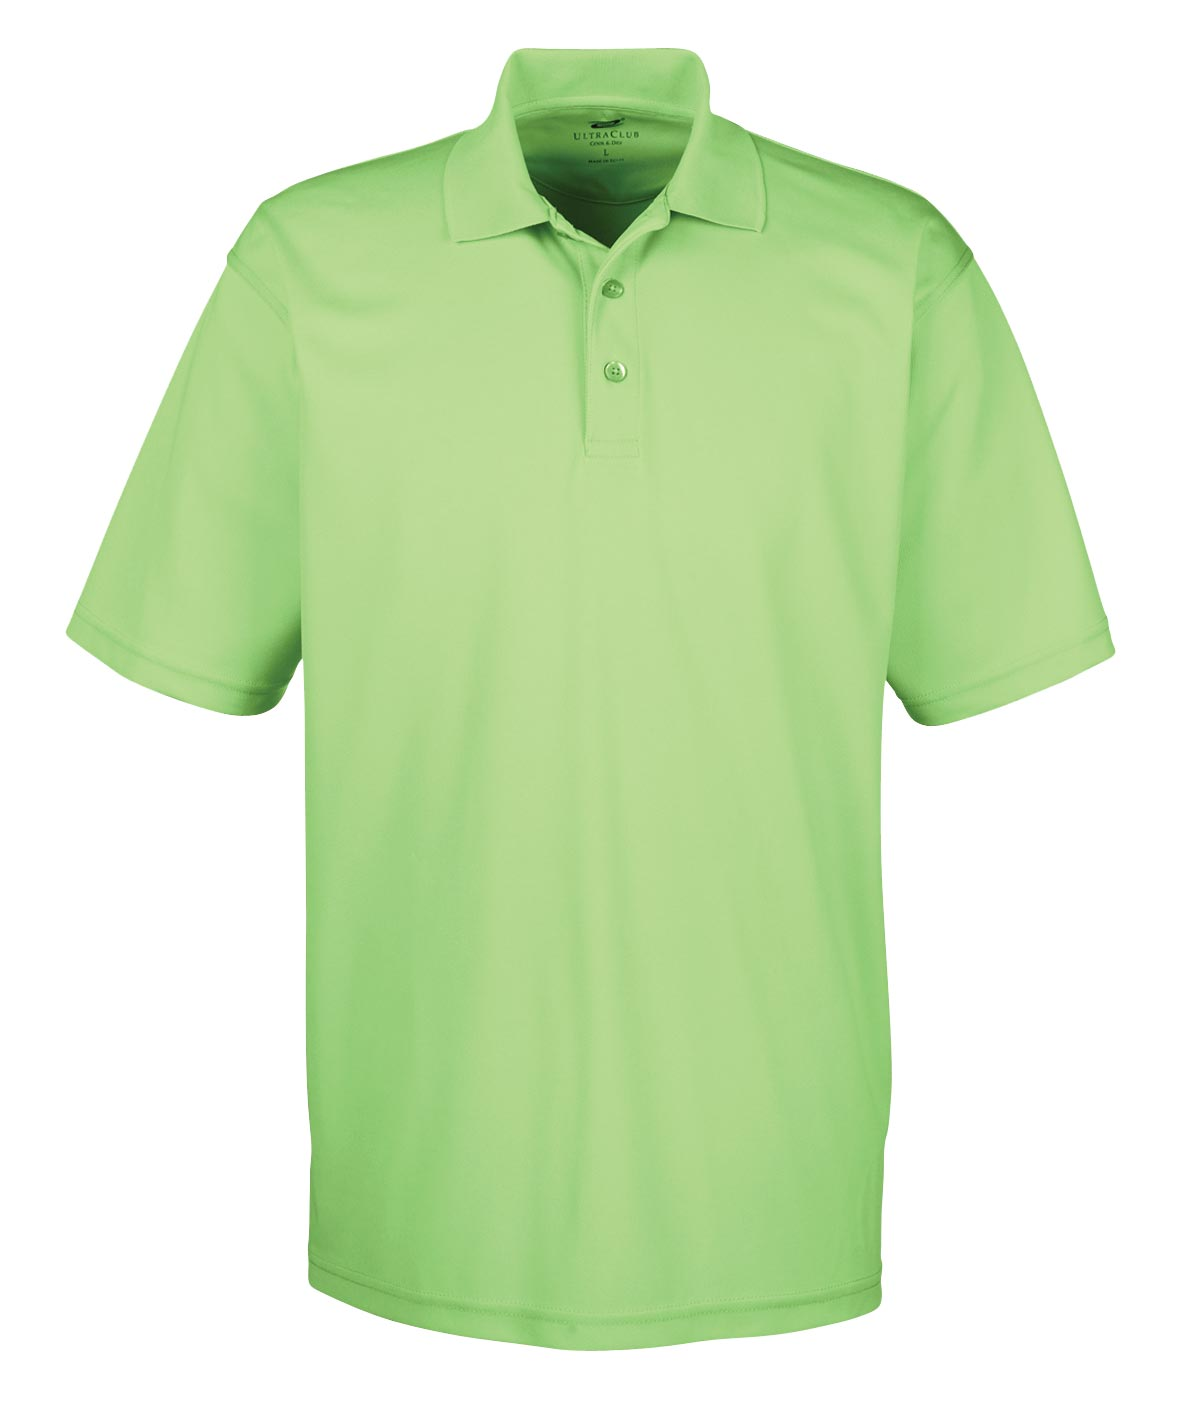 UltraClub Mens Cool and Dry Mesh Pique Polo